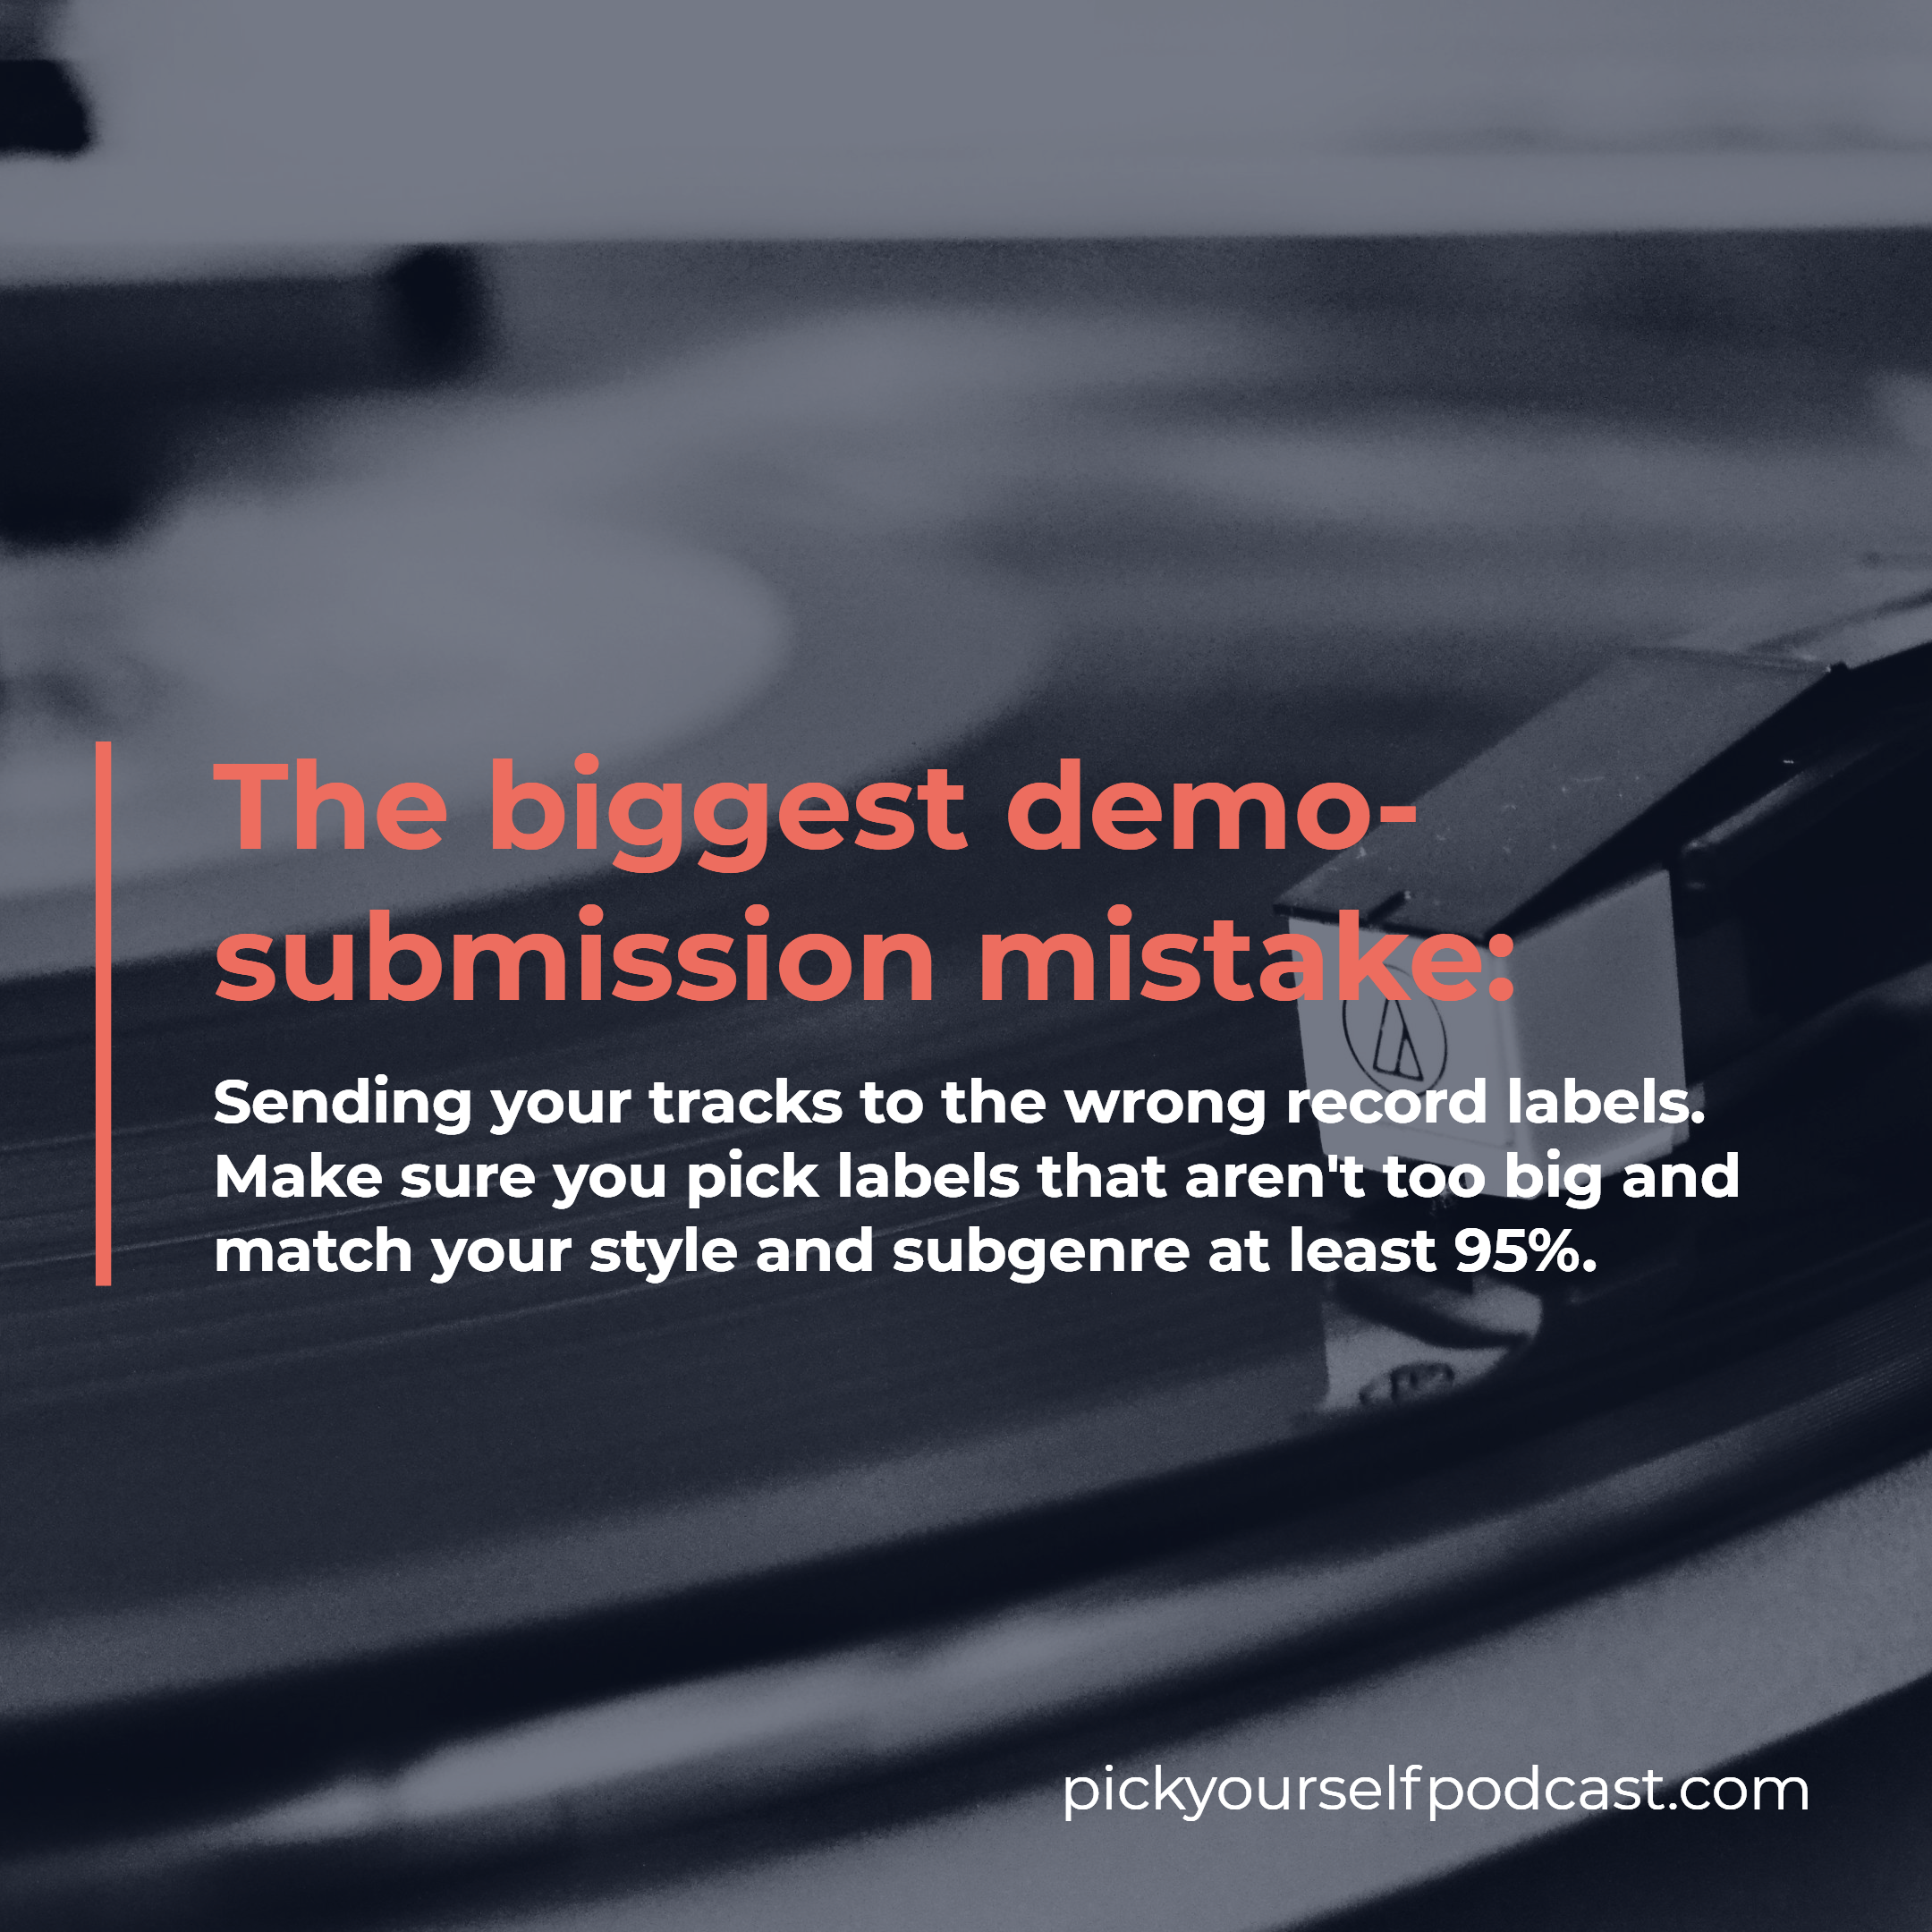 How to submit songs to labels visual 01. It says: The biggest demo- submission mistake: Sending your tracks to the wrong record labels. Make sure you pick labels that aren't too big and match your style and subgenre at least 95%.